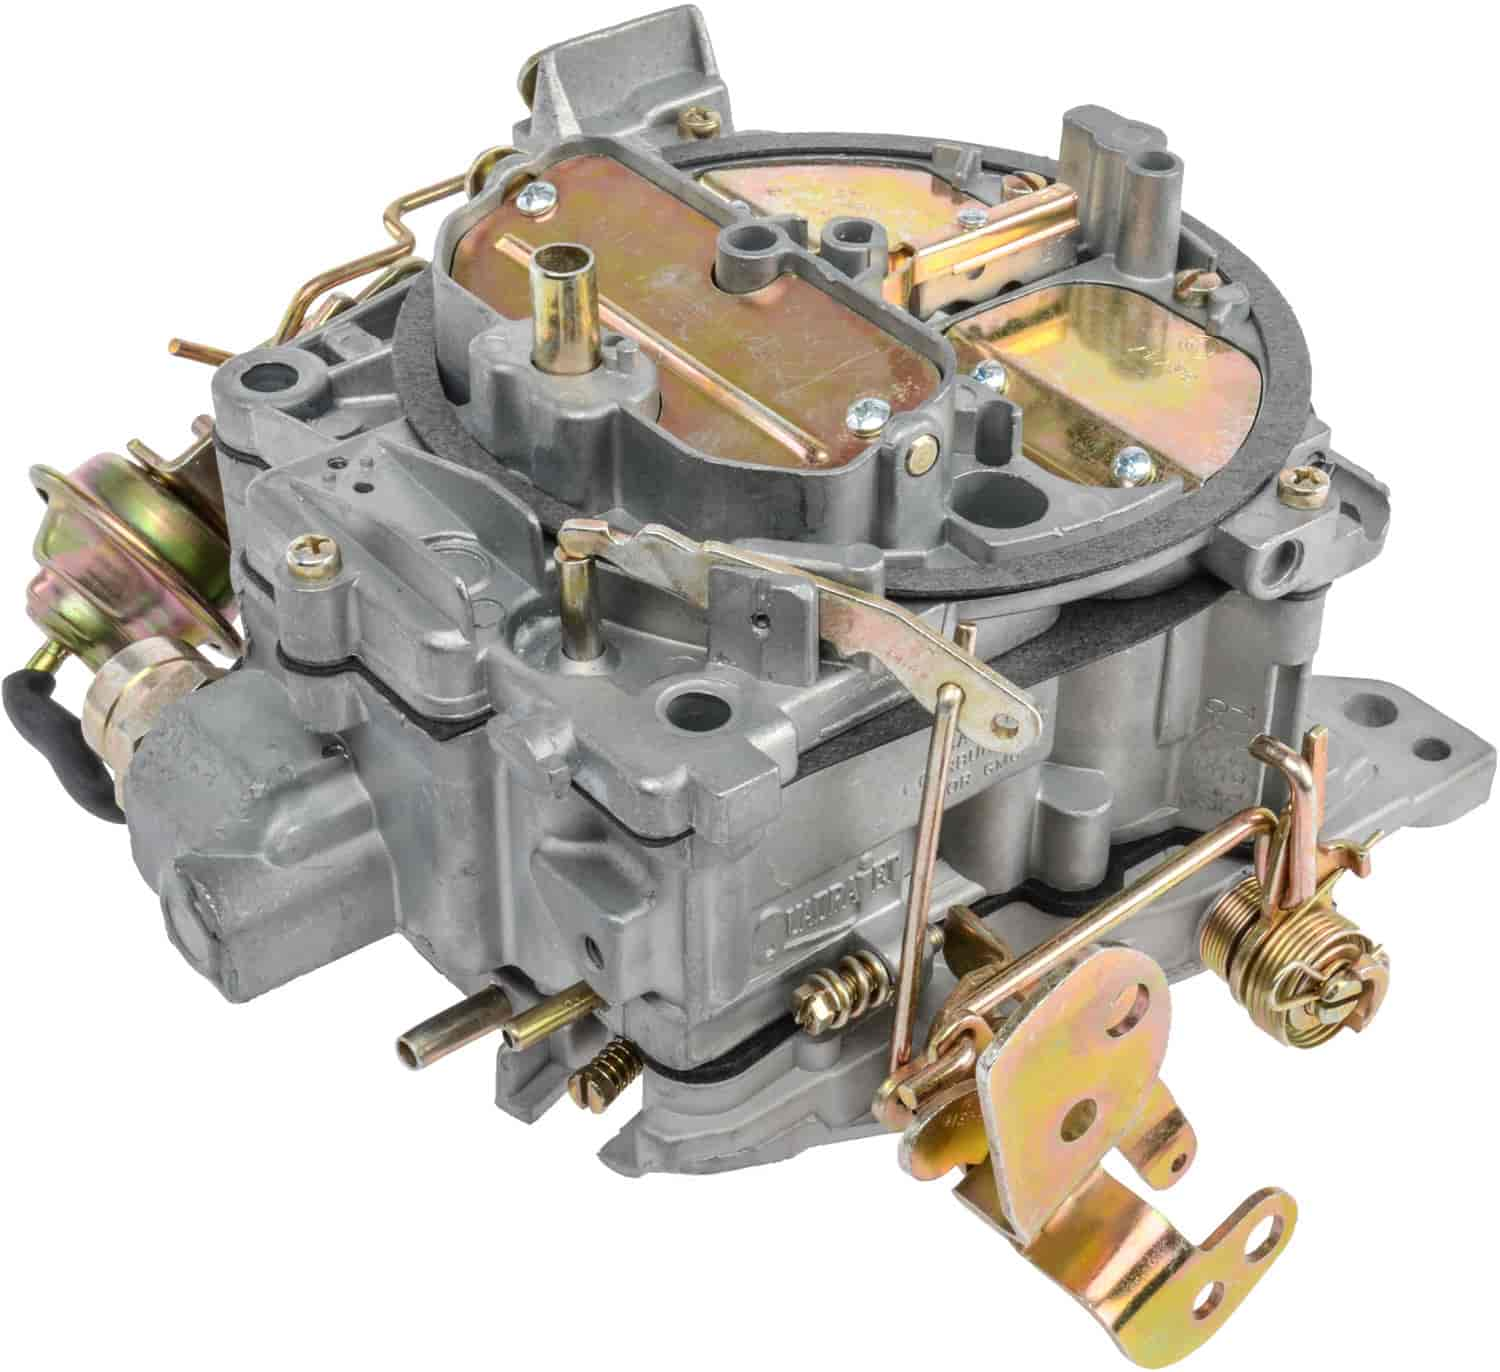 JEGS Performance Products 15803 - JEGS 4-bbl Remanufactured Quadrajet Carburetors